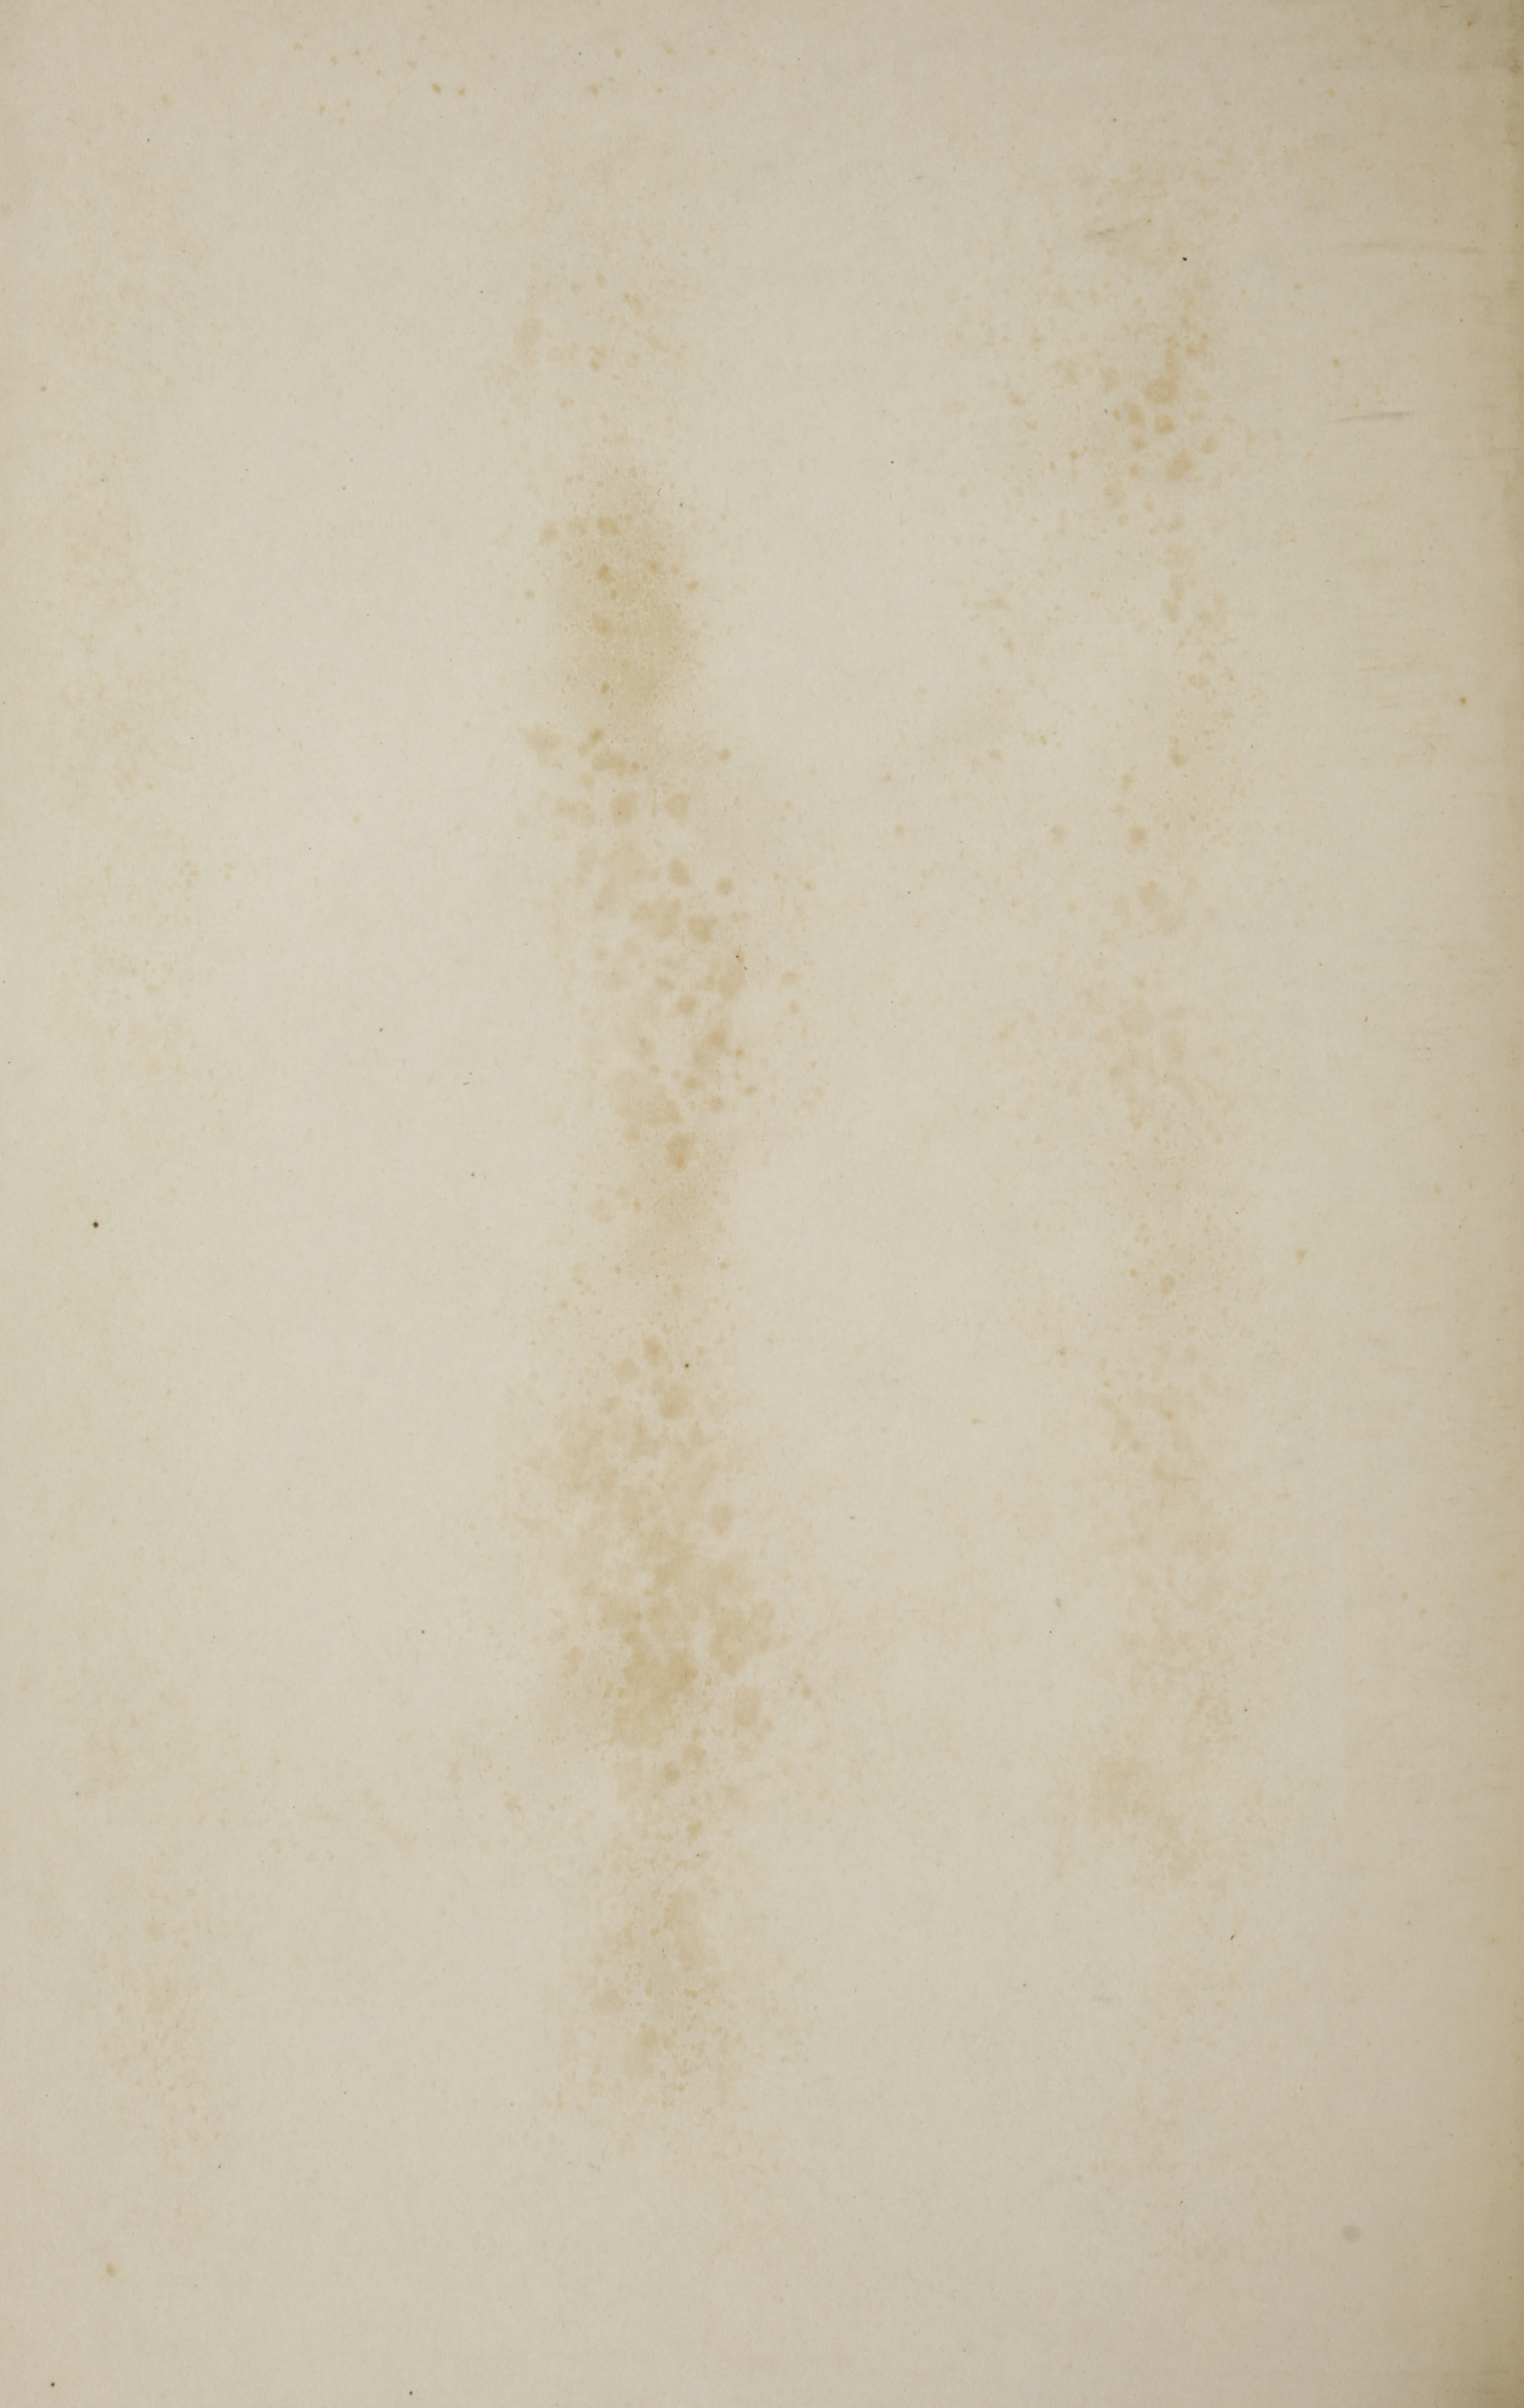 Charleston Yearbook, 1919, blank page